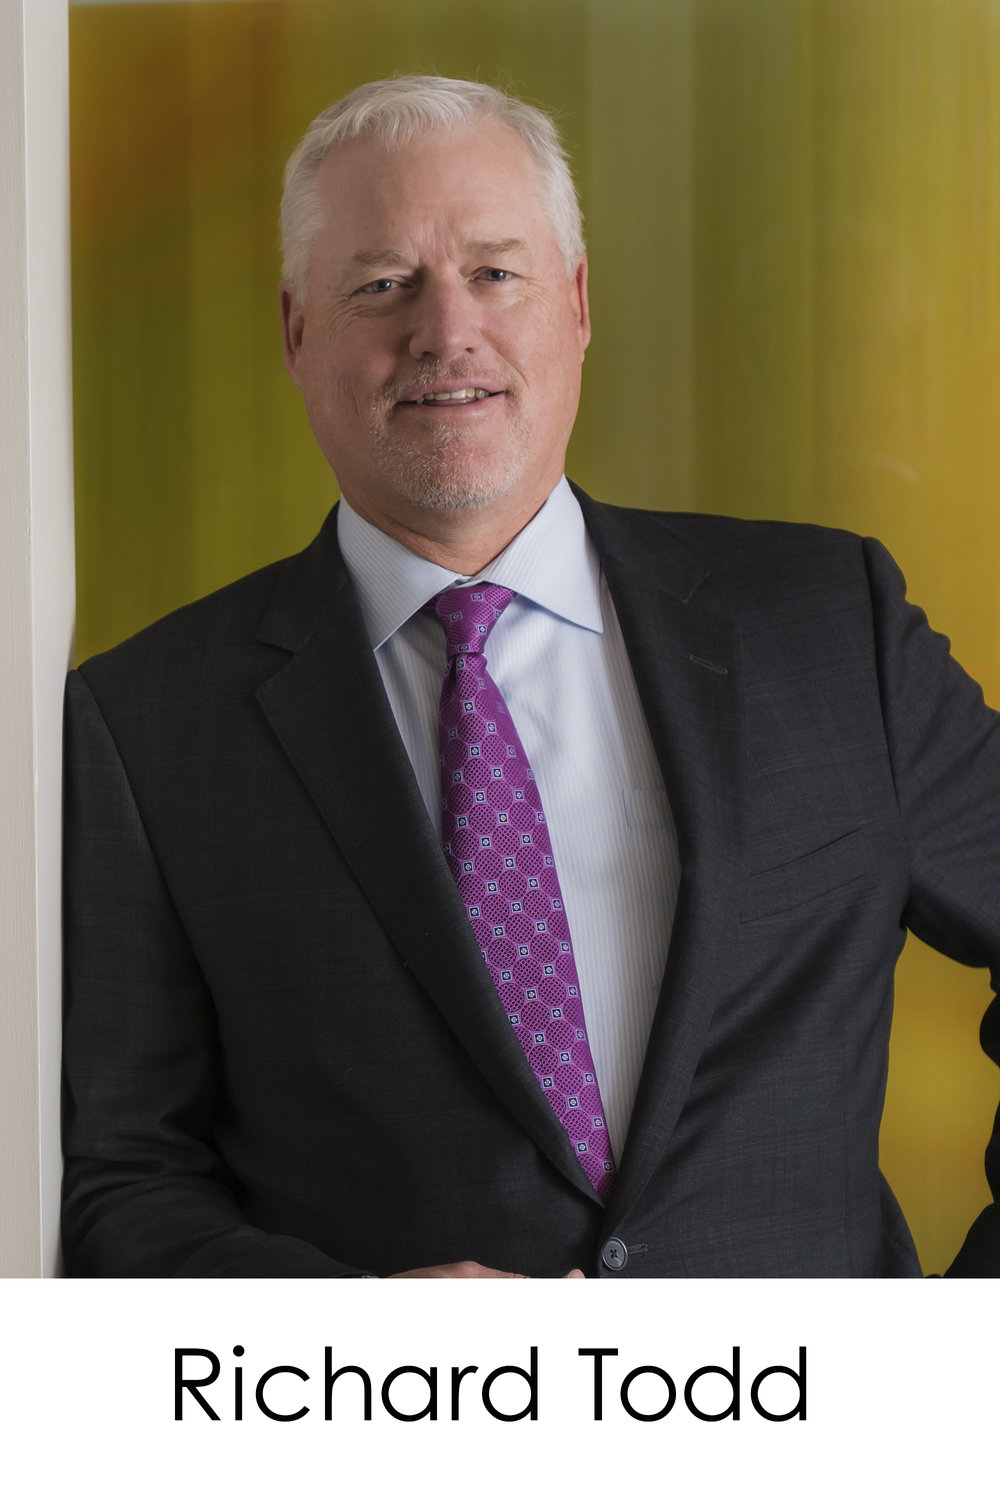 Richard Todd, CEO